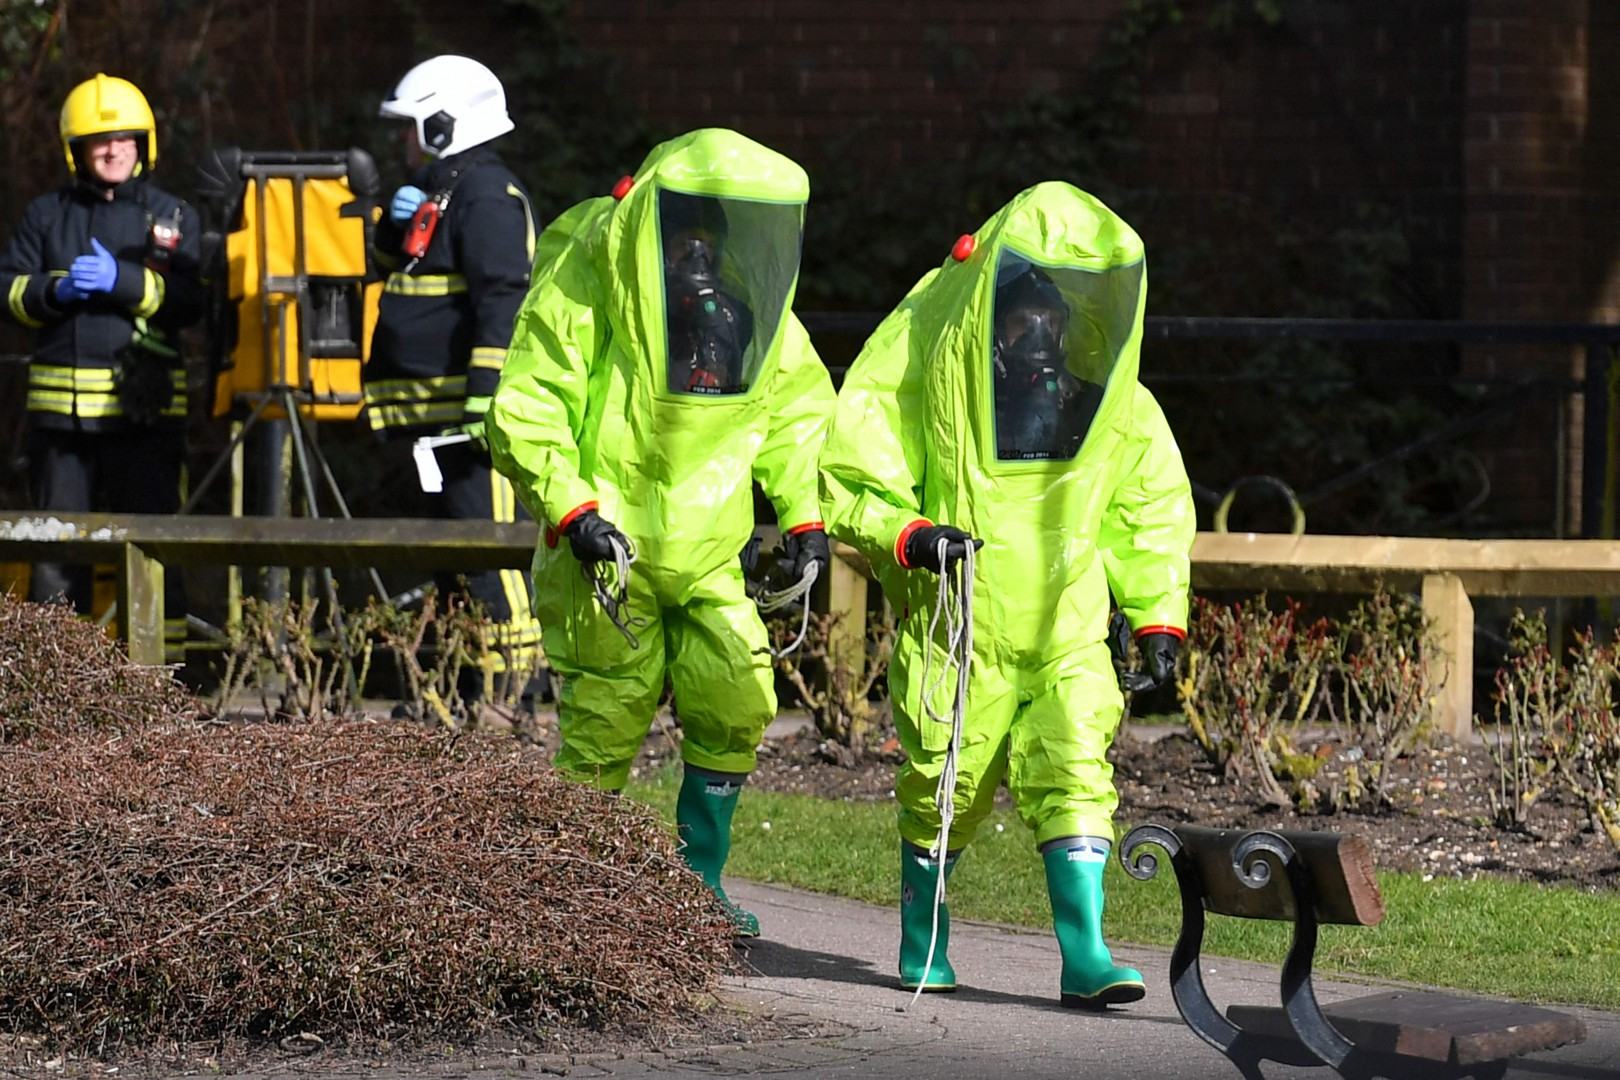 """(FILES) In this file photo taken on March 08, 2018 Members of the fire brigade in green biohazard encapsulated suits work to re-attach the tent over the bench where a man and a woman were found in critical condition sparking a major incident on March 4 at The Maltings shopping centre in Salisbury, southern England, on March 8, 2018 after the tent became detached. - The head of the MI6 foreign spy agency warned Russia on December 3, 2018 not to underestimate Britain's capabilities and determination to expose malign behaviour, ahead of a rare public speech. Alex Younger, who as head of the intelligence agency is known as """"C"""", will use the speech to highlight adversaries who regard themselves as being in perpetual confrontation with Britain. (Photo by Ben STANSALL / AFP)"""